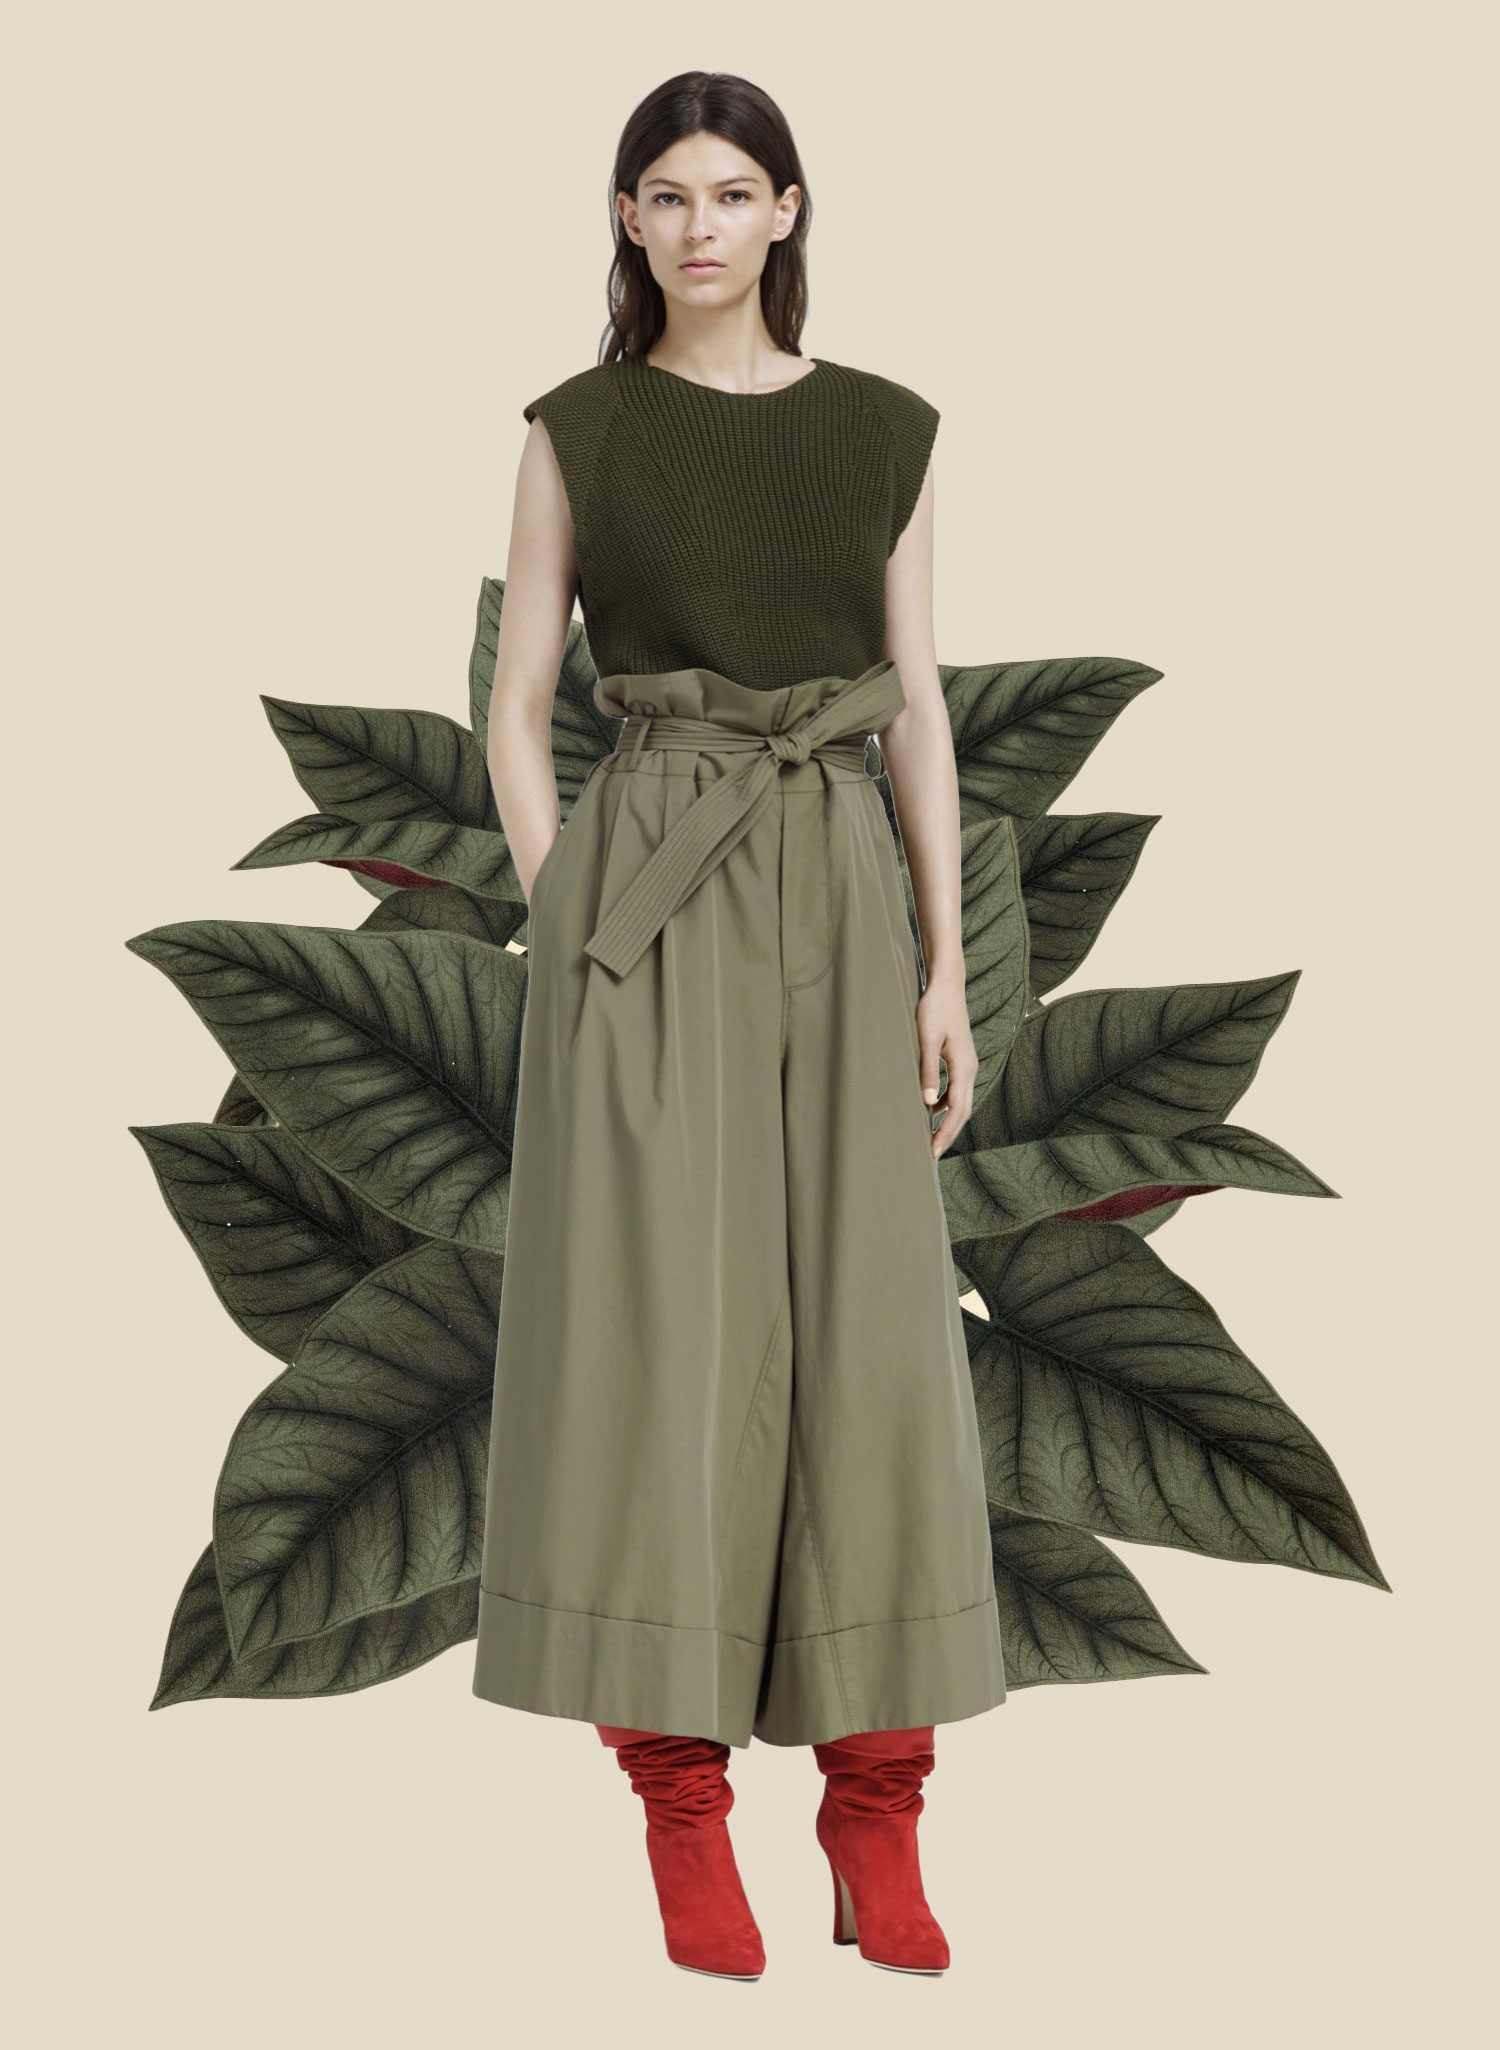 Miss Moss: Botanical Resort. Colour Mash Ups of Resort 2016 x Vintage Botanical Illustrations